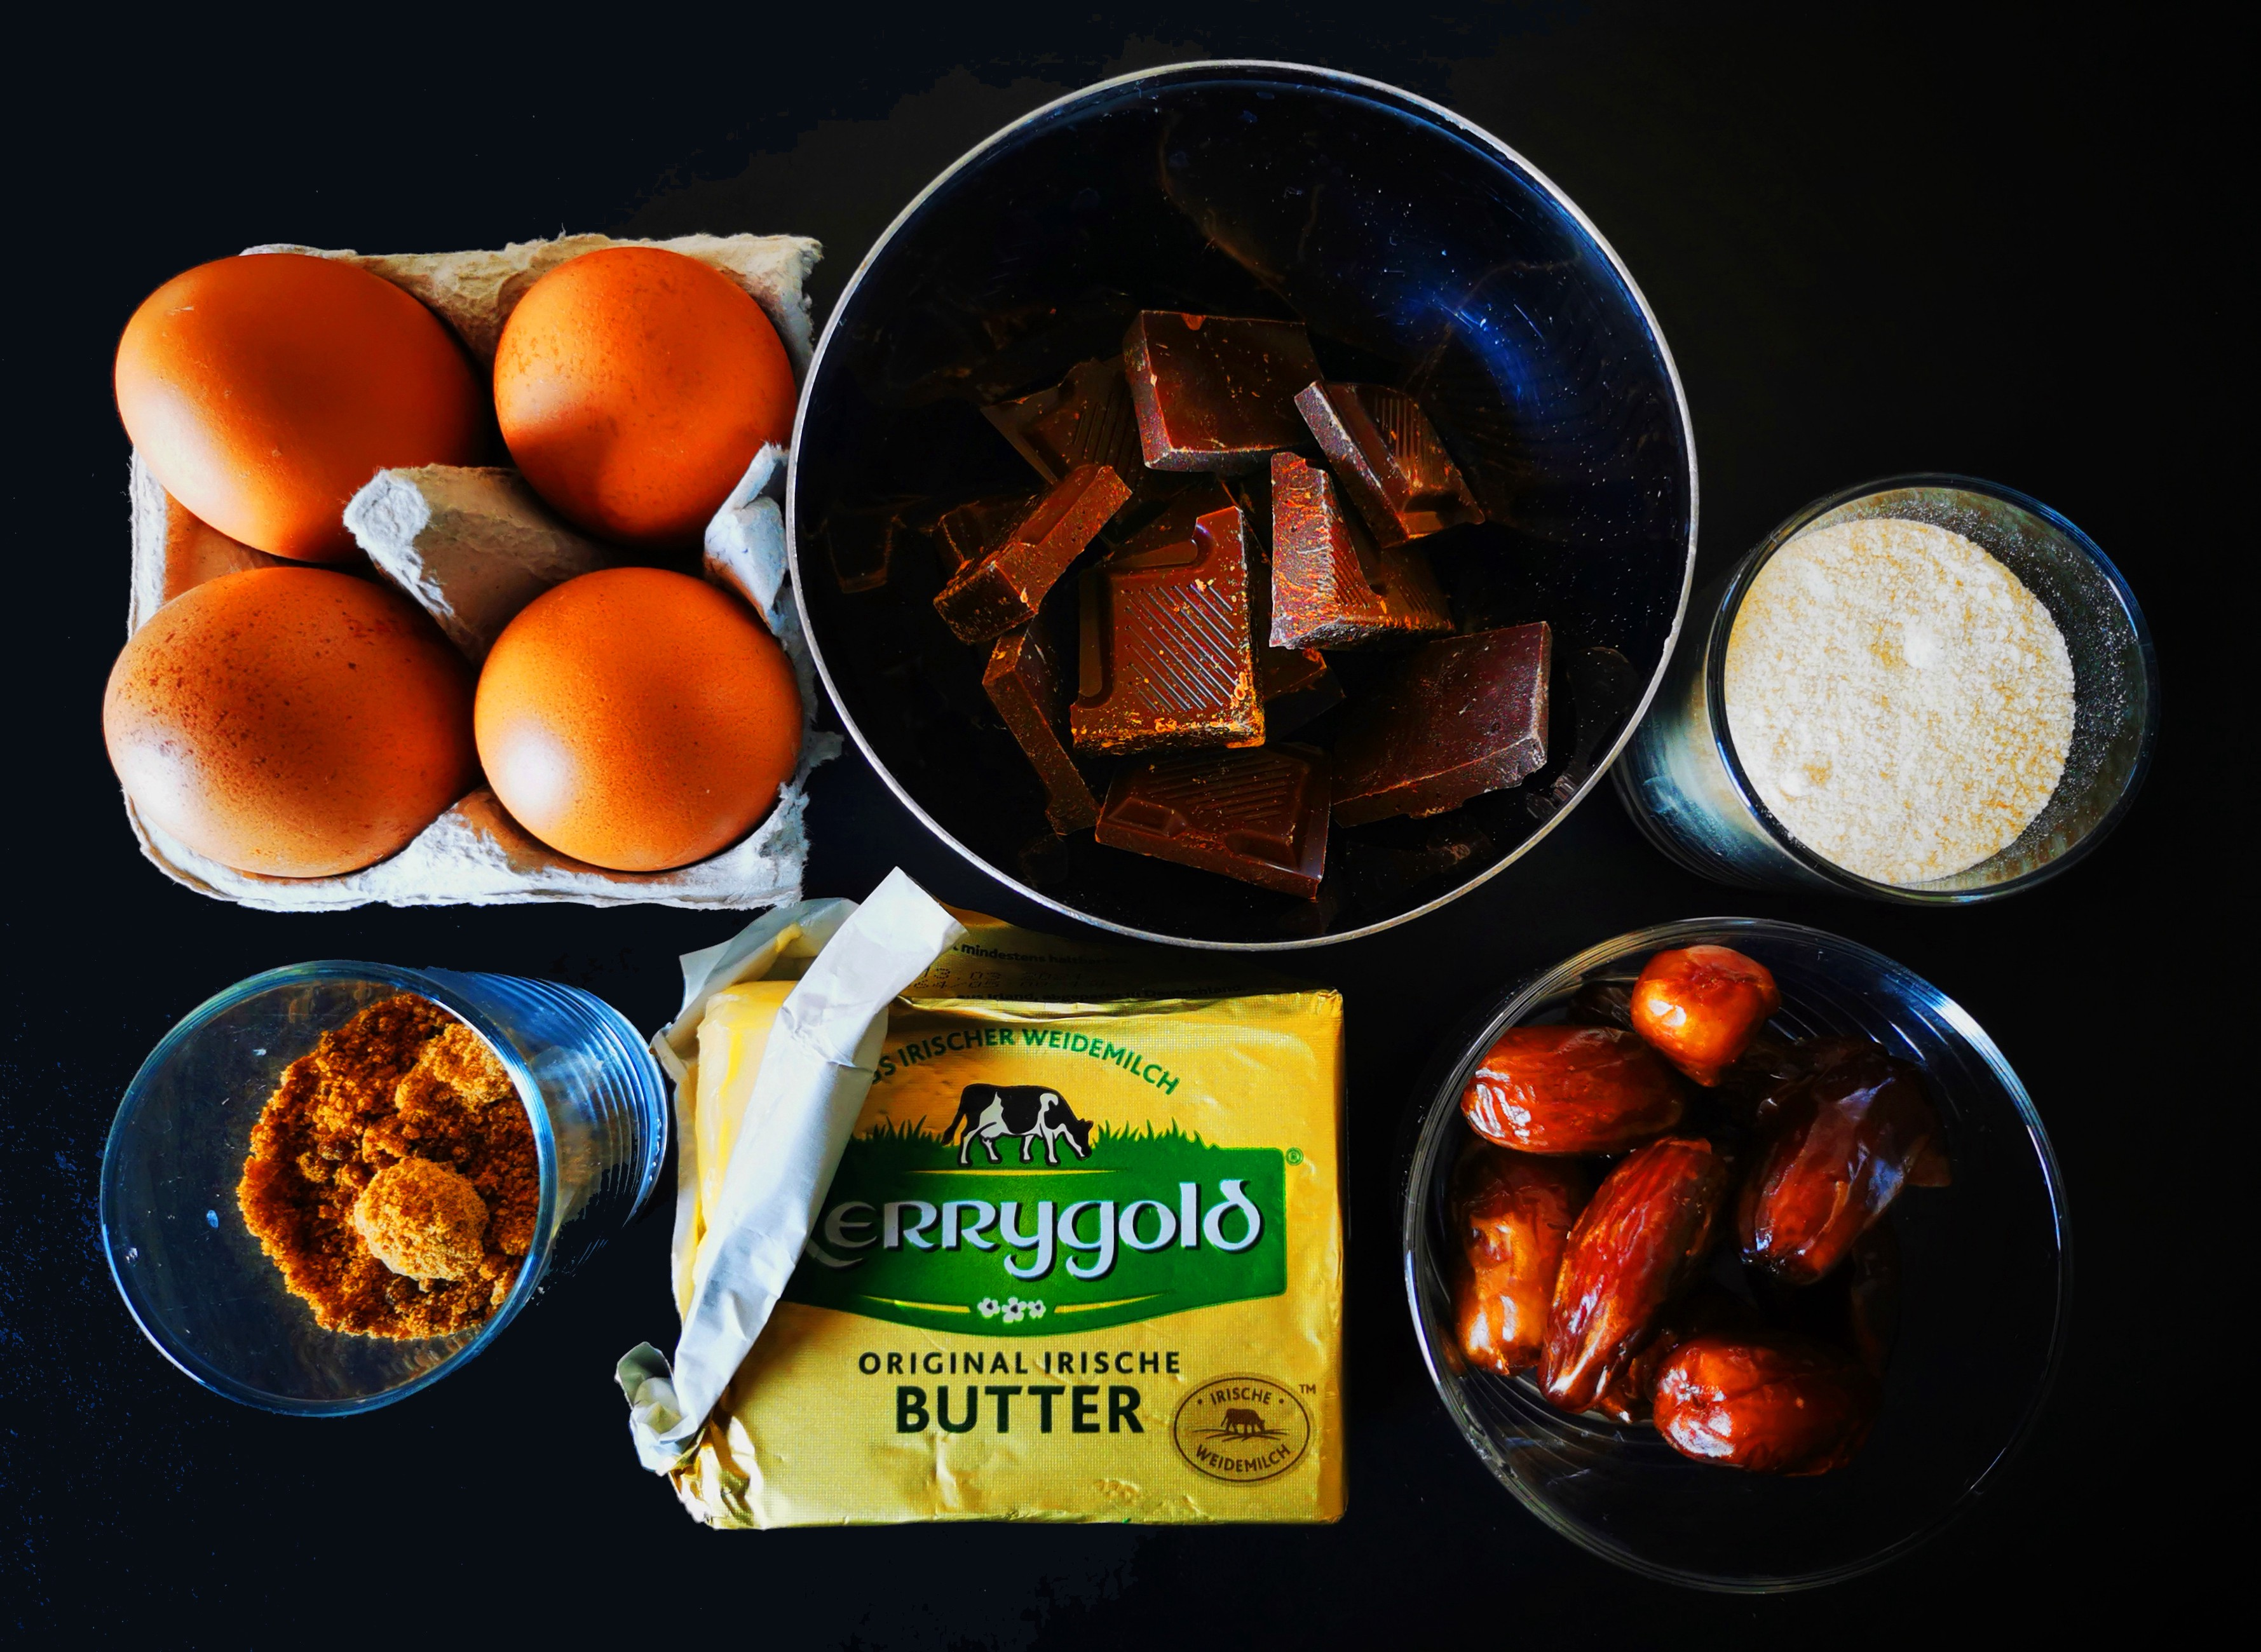 Those are the 5 to 6 ingredients I used for a simply brownie recipe.